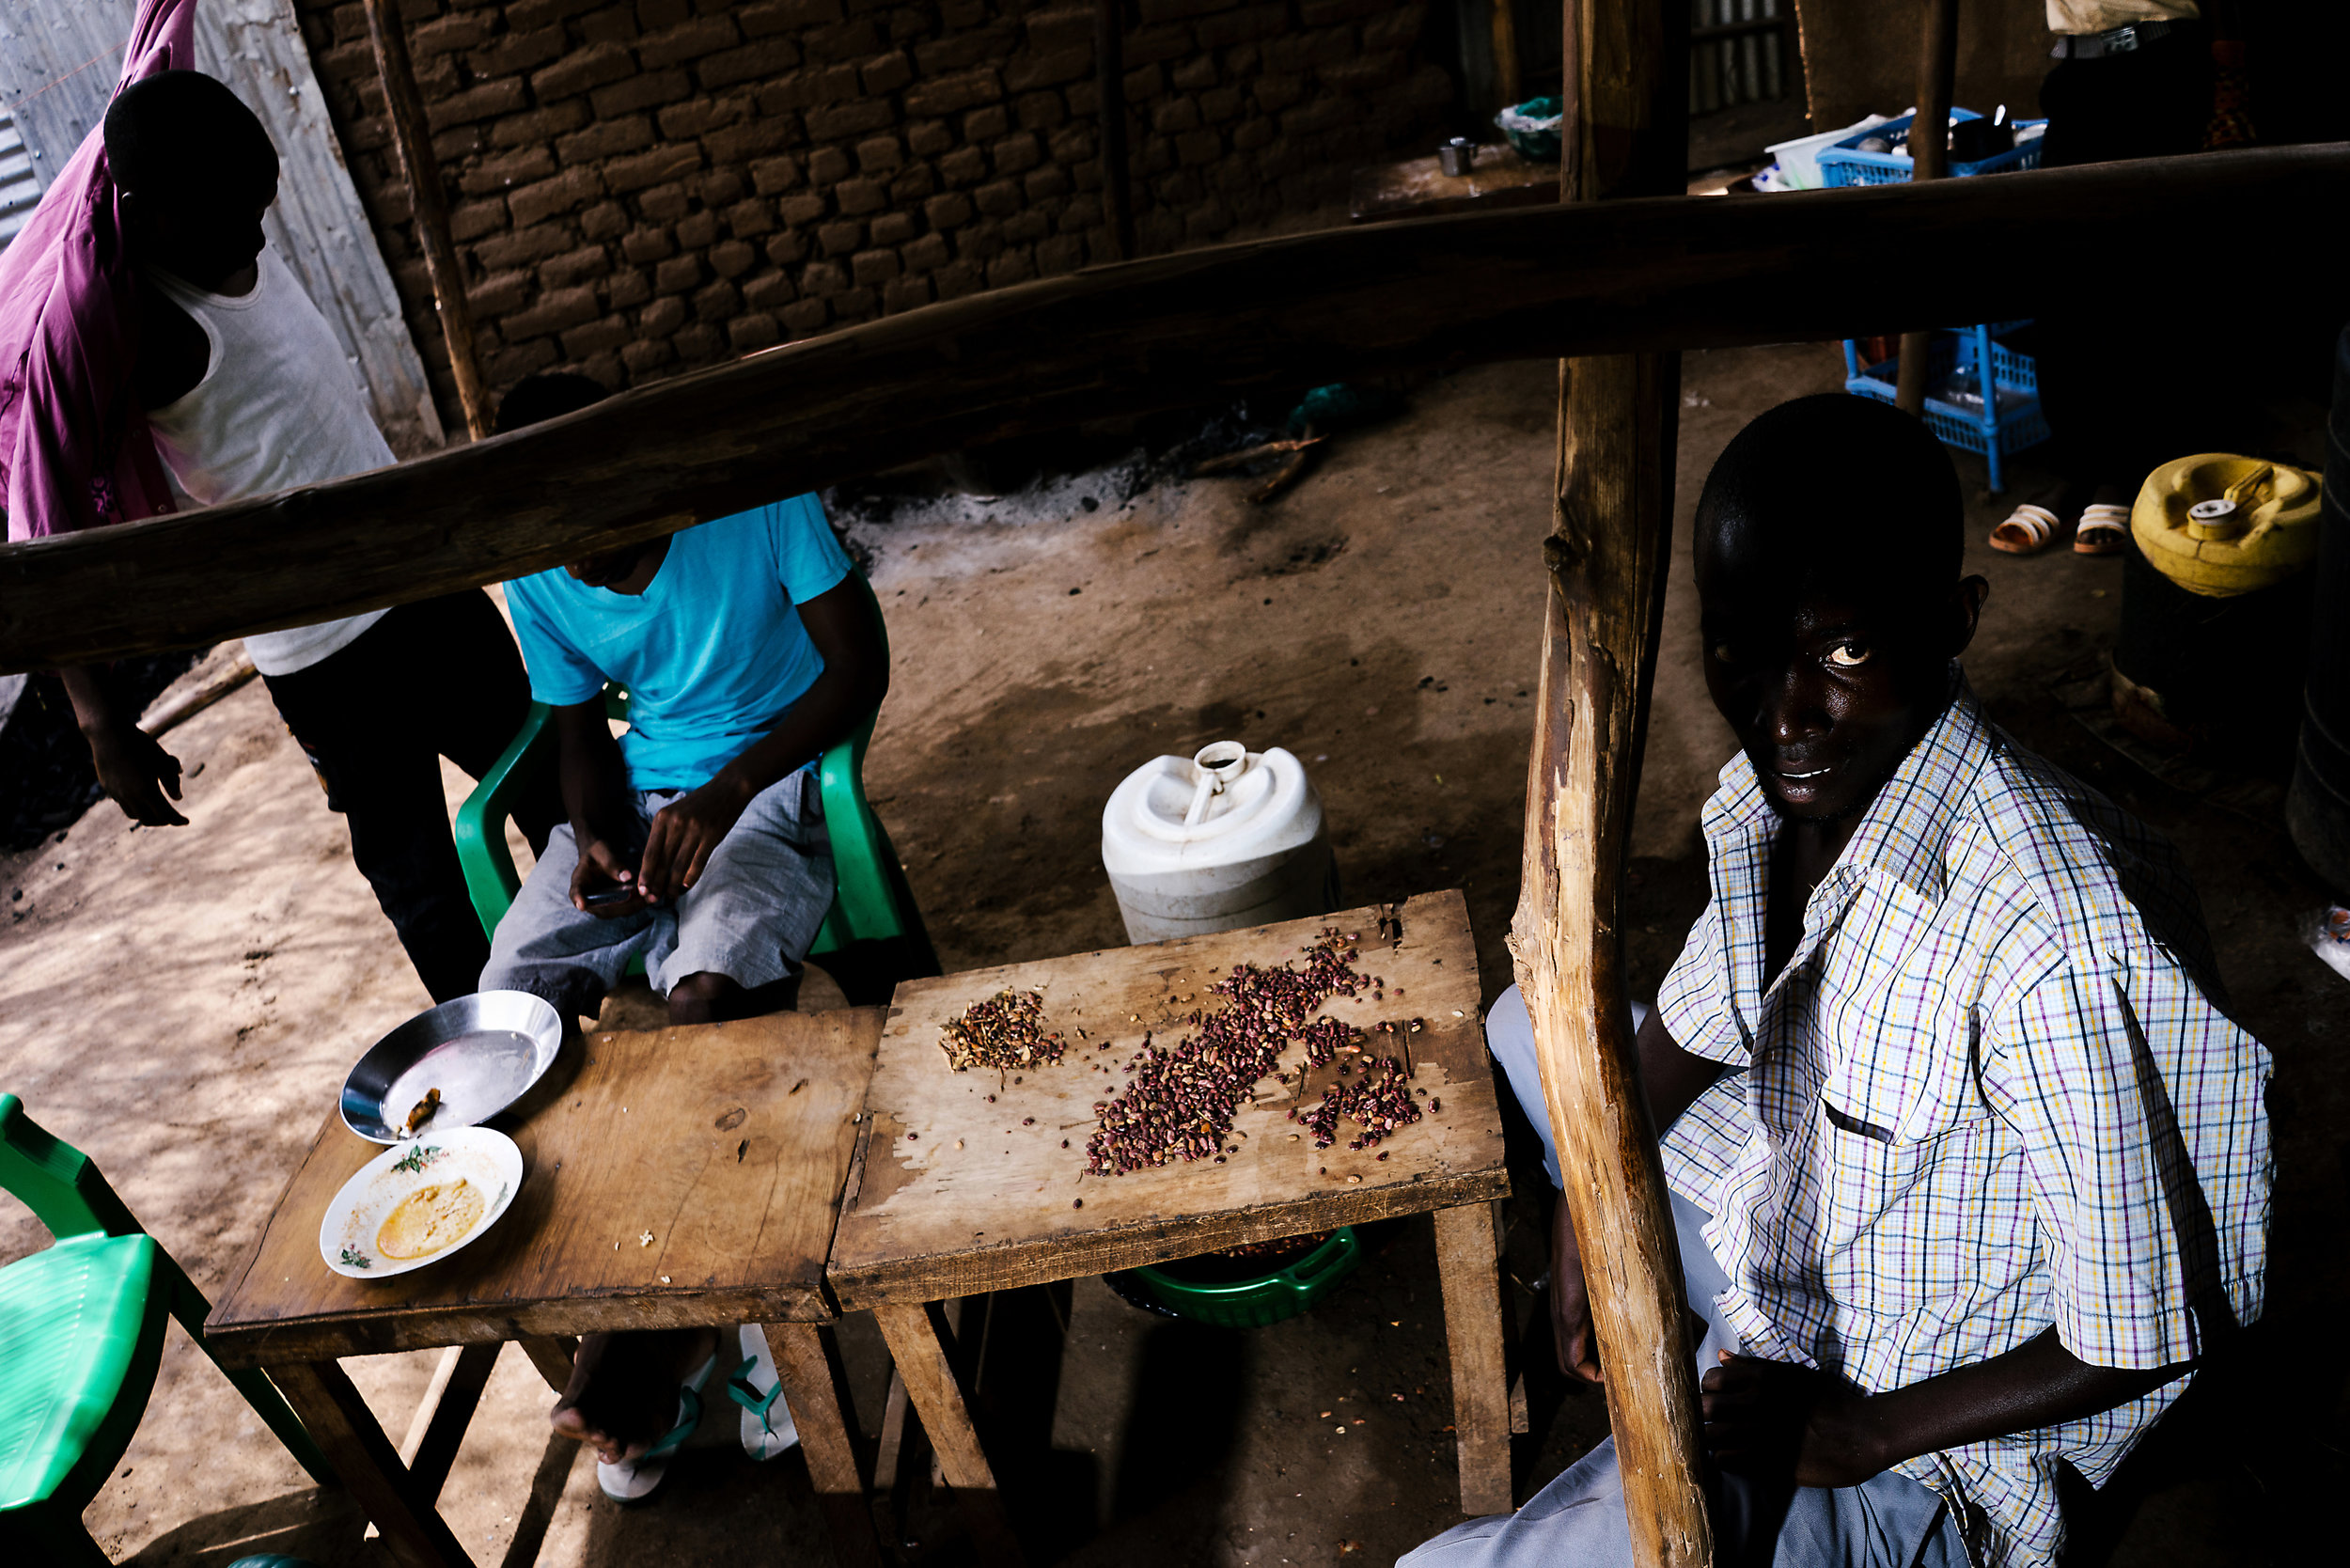 Men cook at a restaurant in Kakuma. The cafe is owned by a gay refugee from Uganda, and all of his employees are also gay Ugandans, according to him.